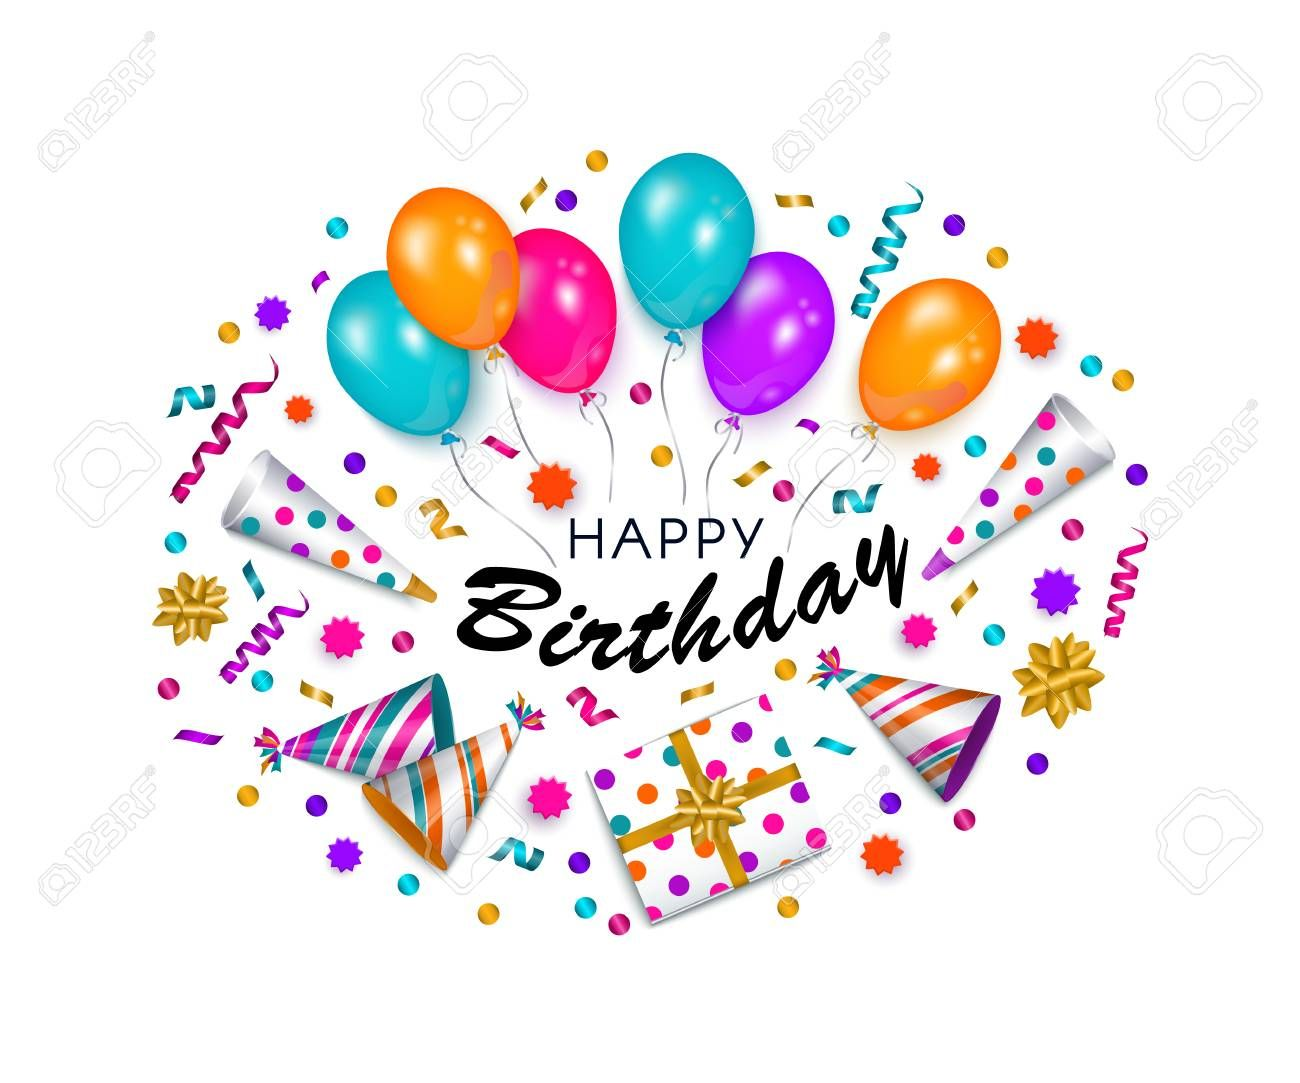 Happy Birthday Greeting Card Banner Poster Design With Realistic